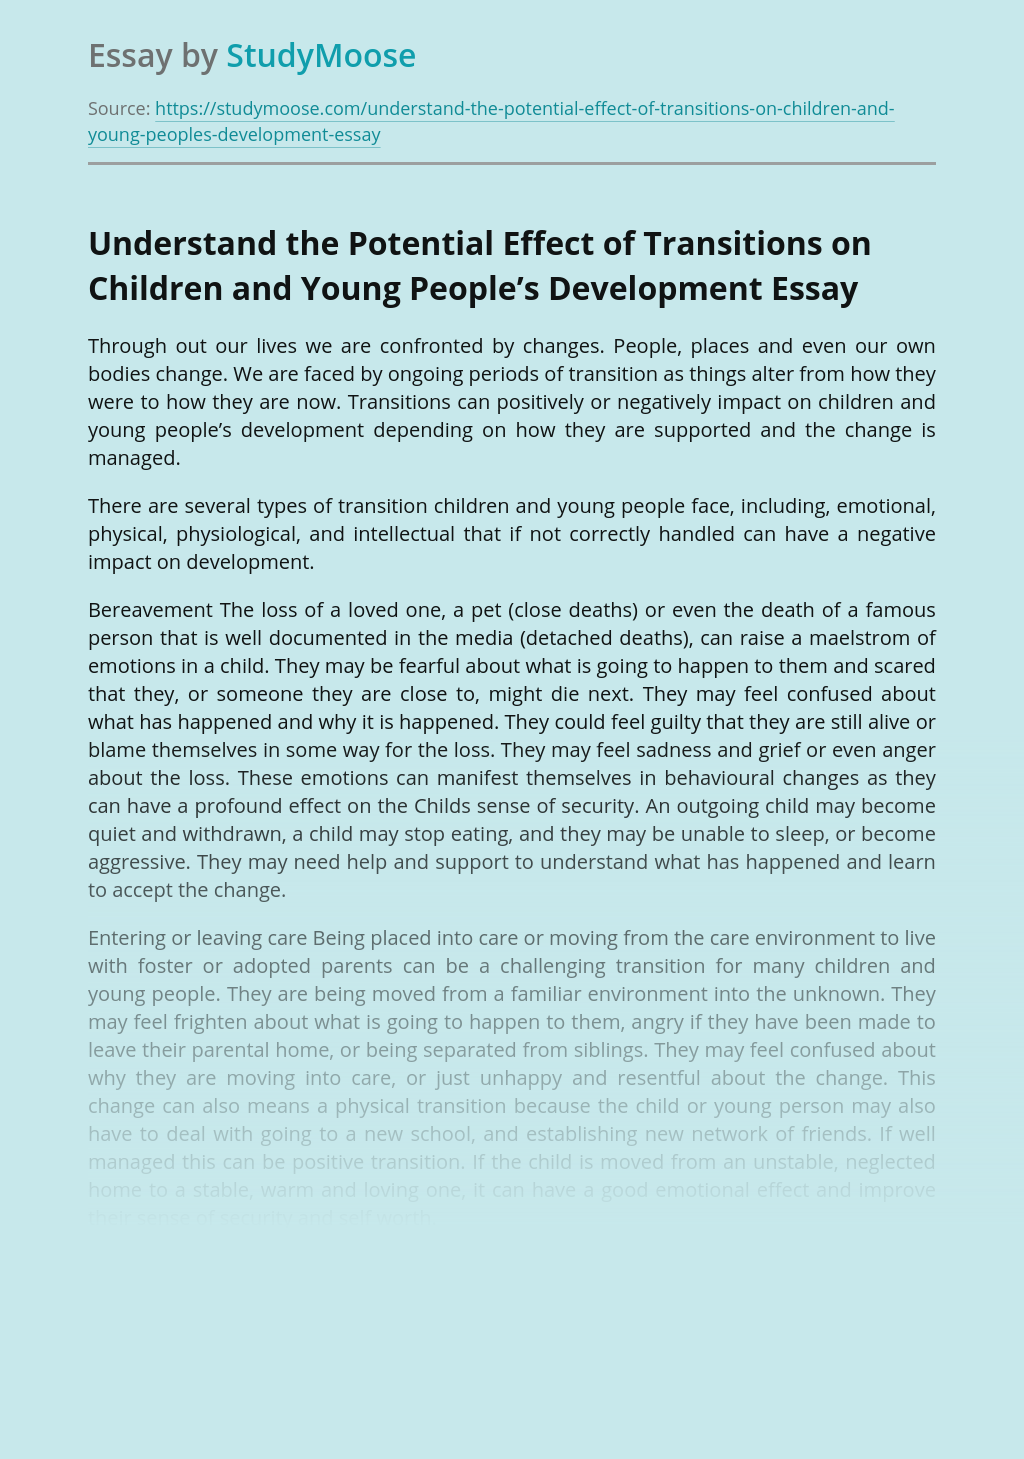 Understand the Potential Effect of Transitions on Children and Young People's Development